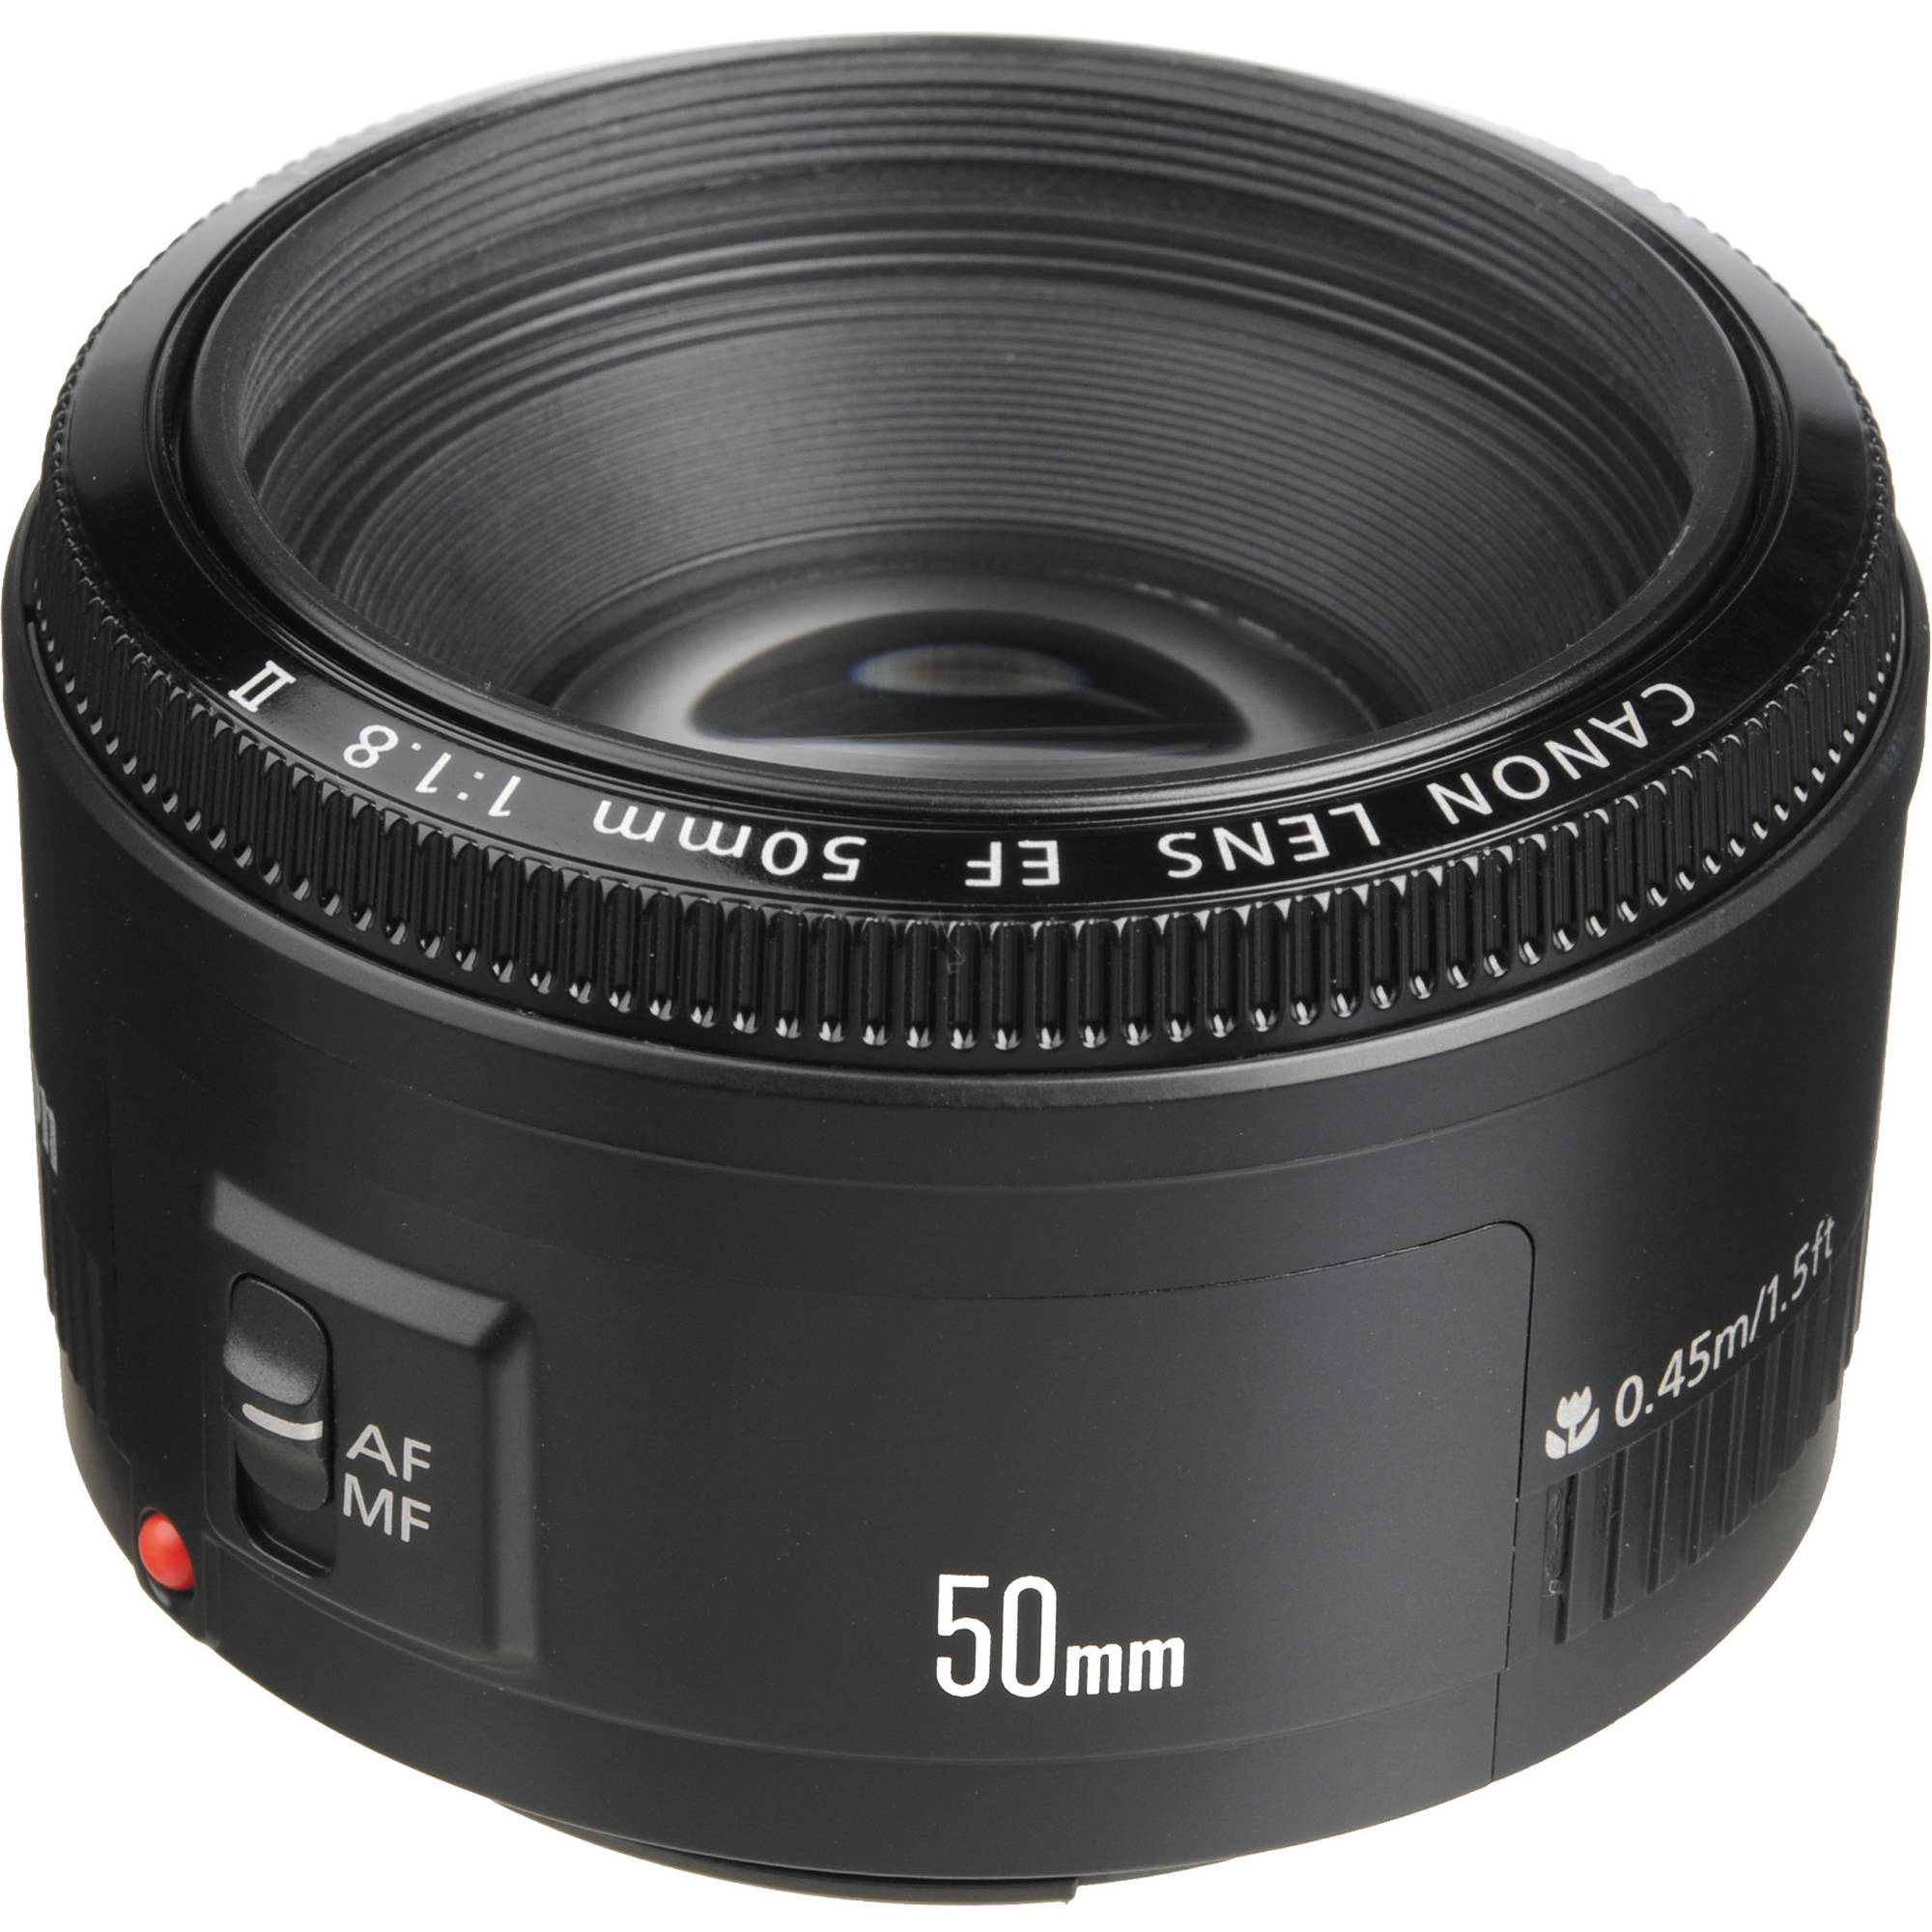 Canon EF 50mm f//1.8 STM Lens review - YouTube